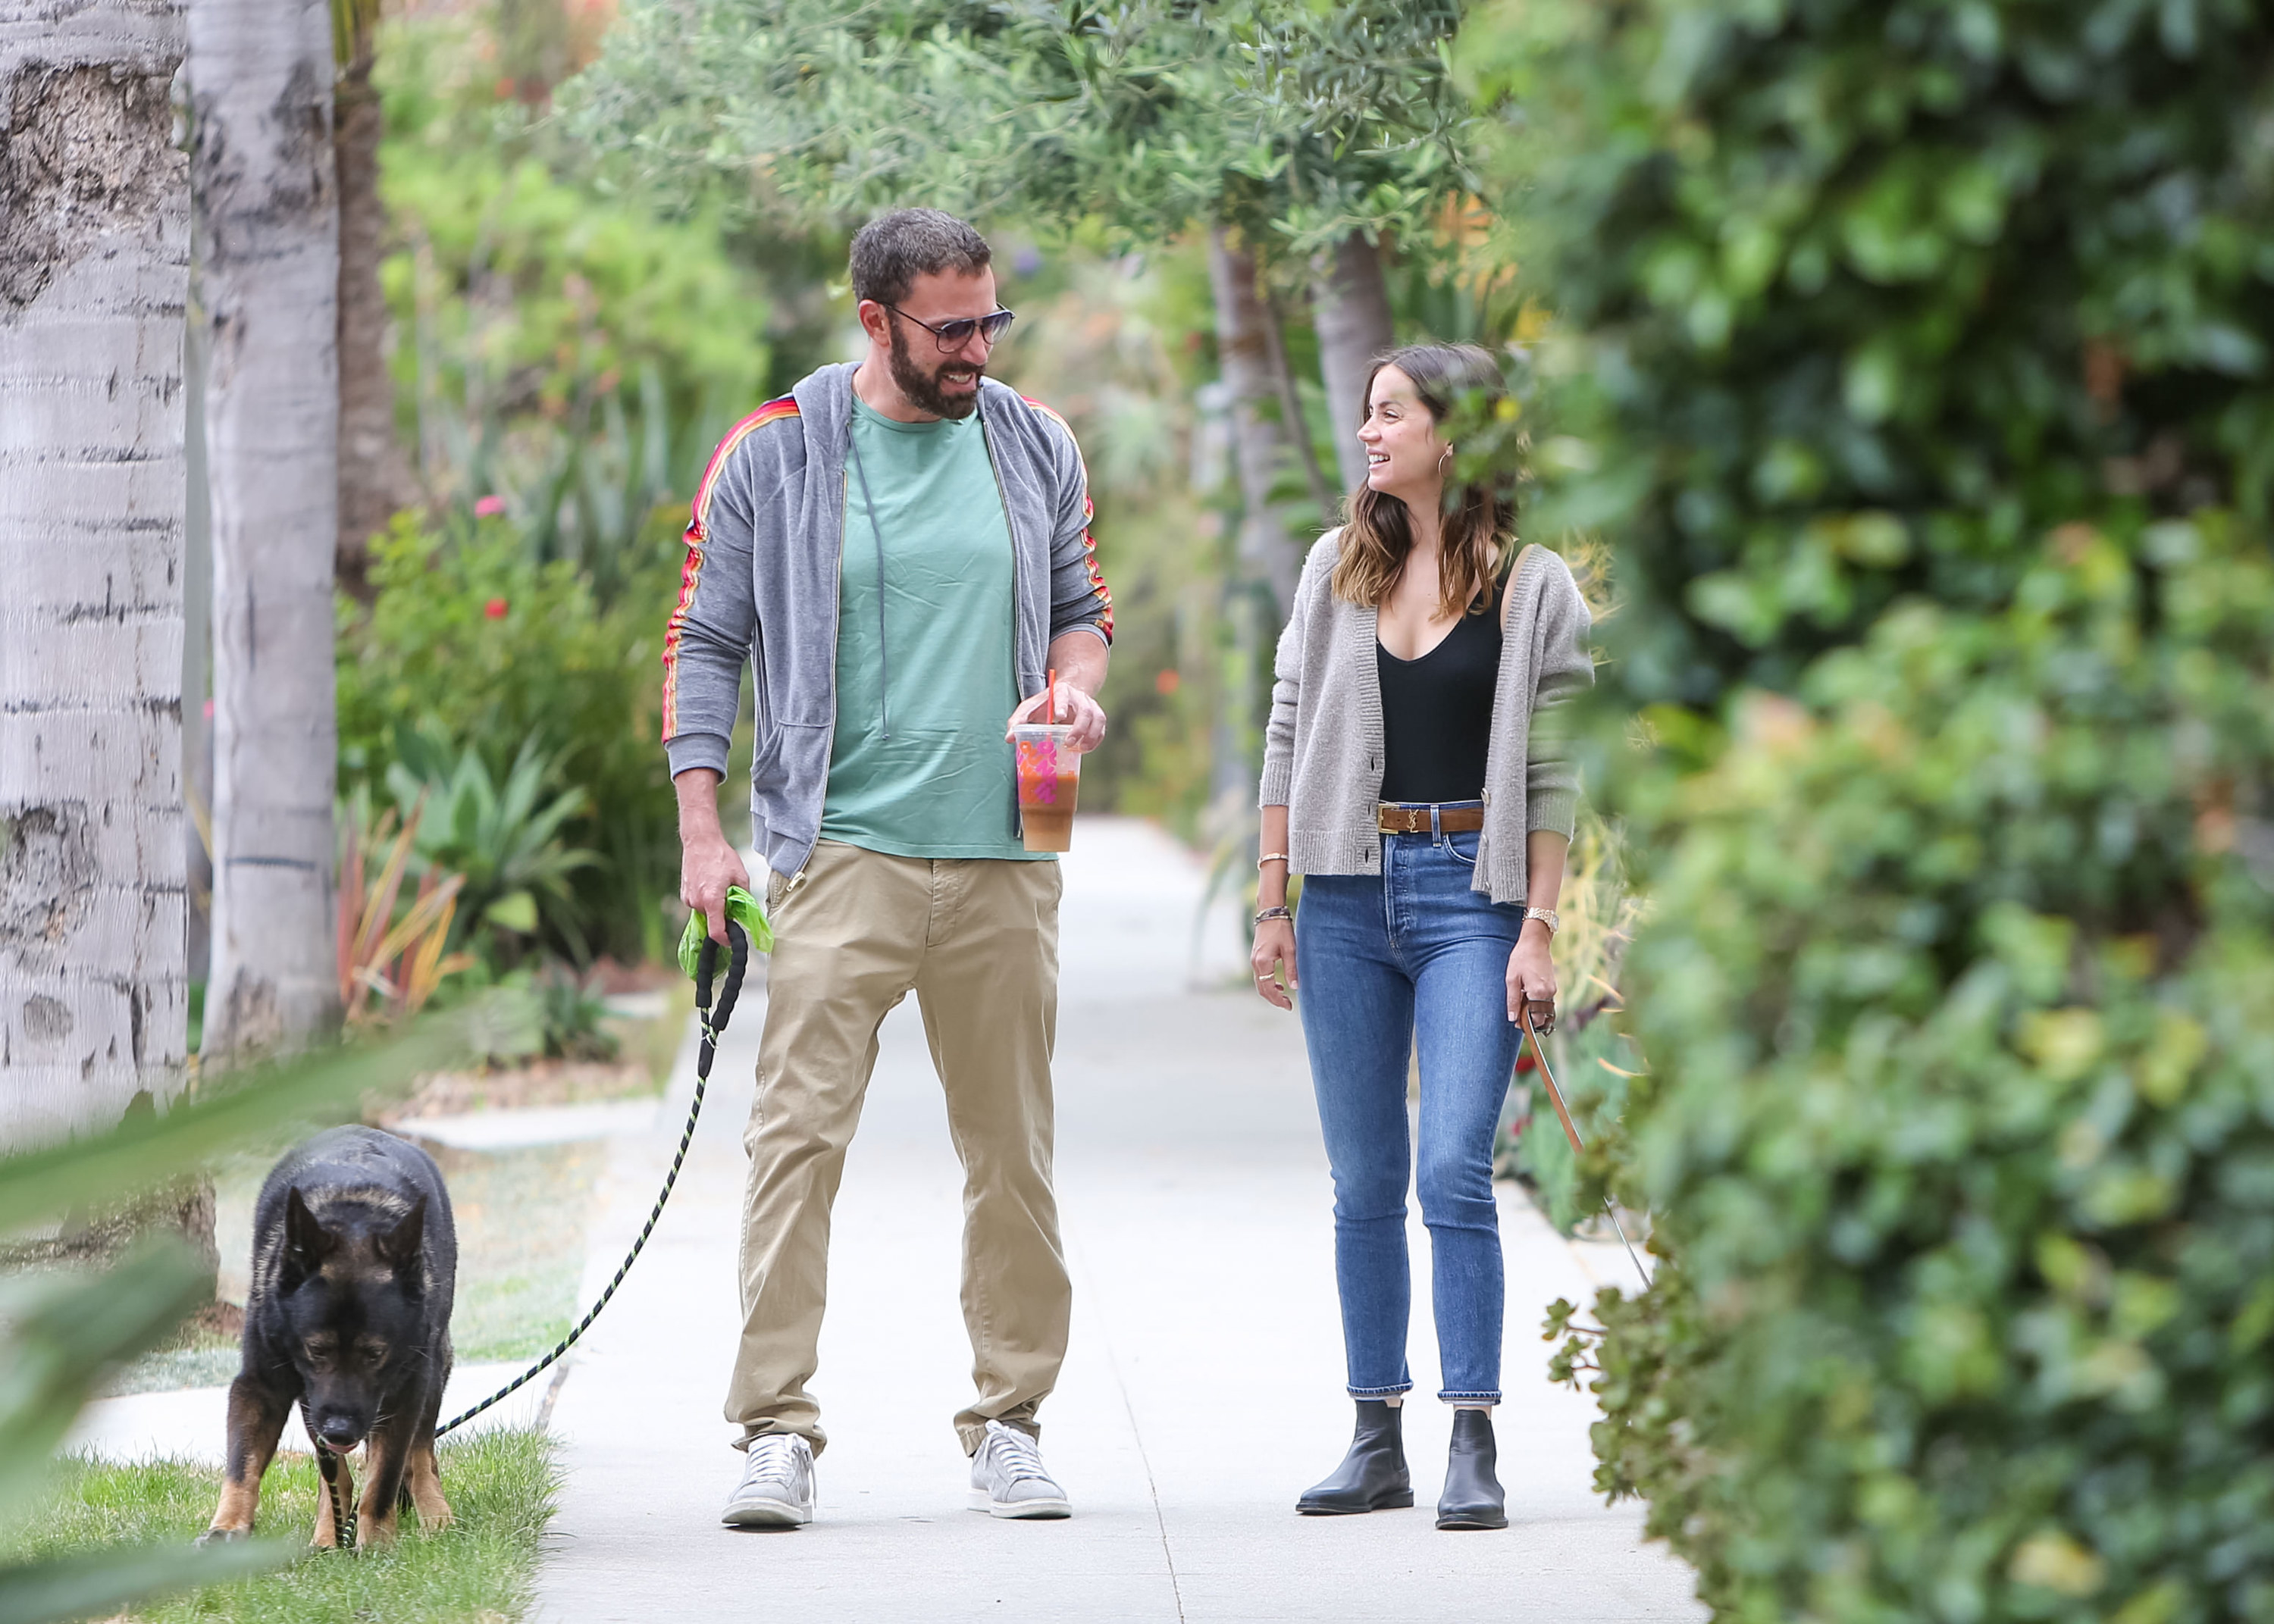 Ben Affleck and Ana de Armas are seen on July 01, 2020 in Los Angeles, California